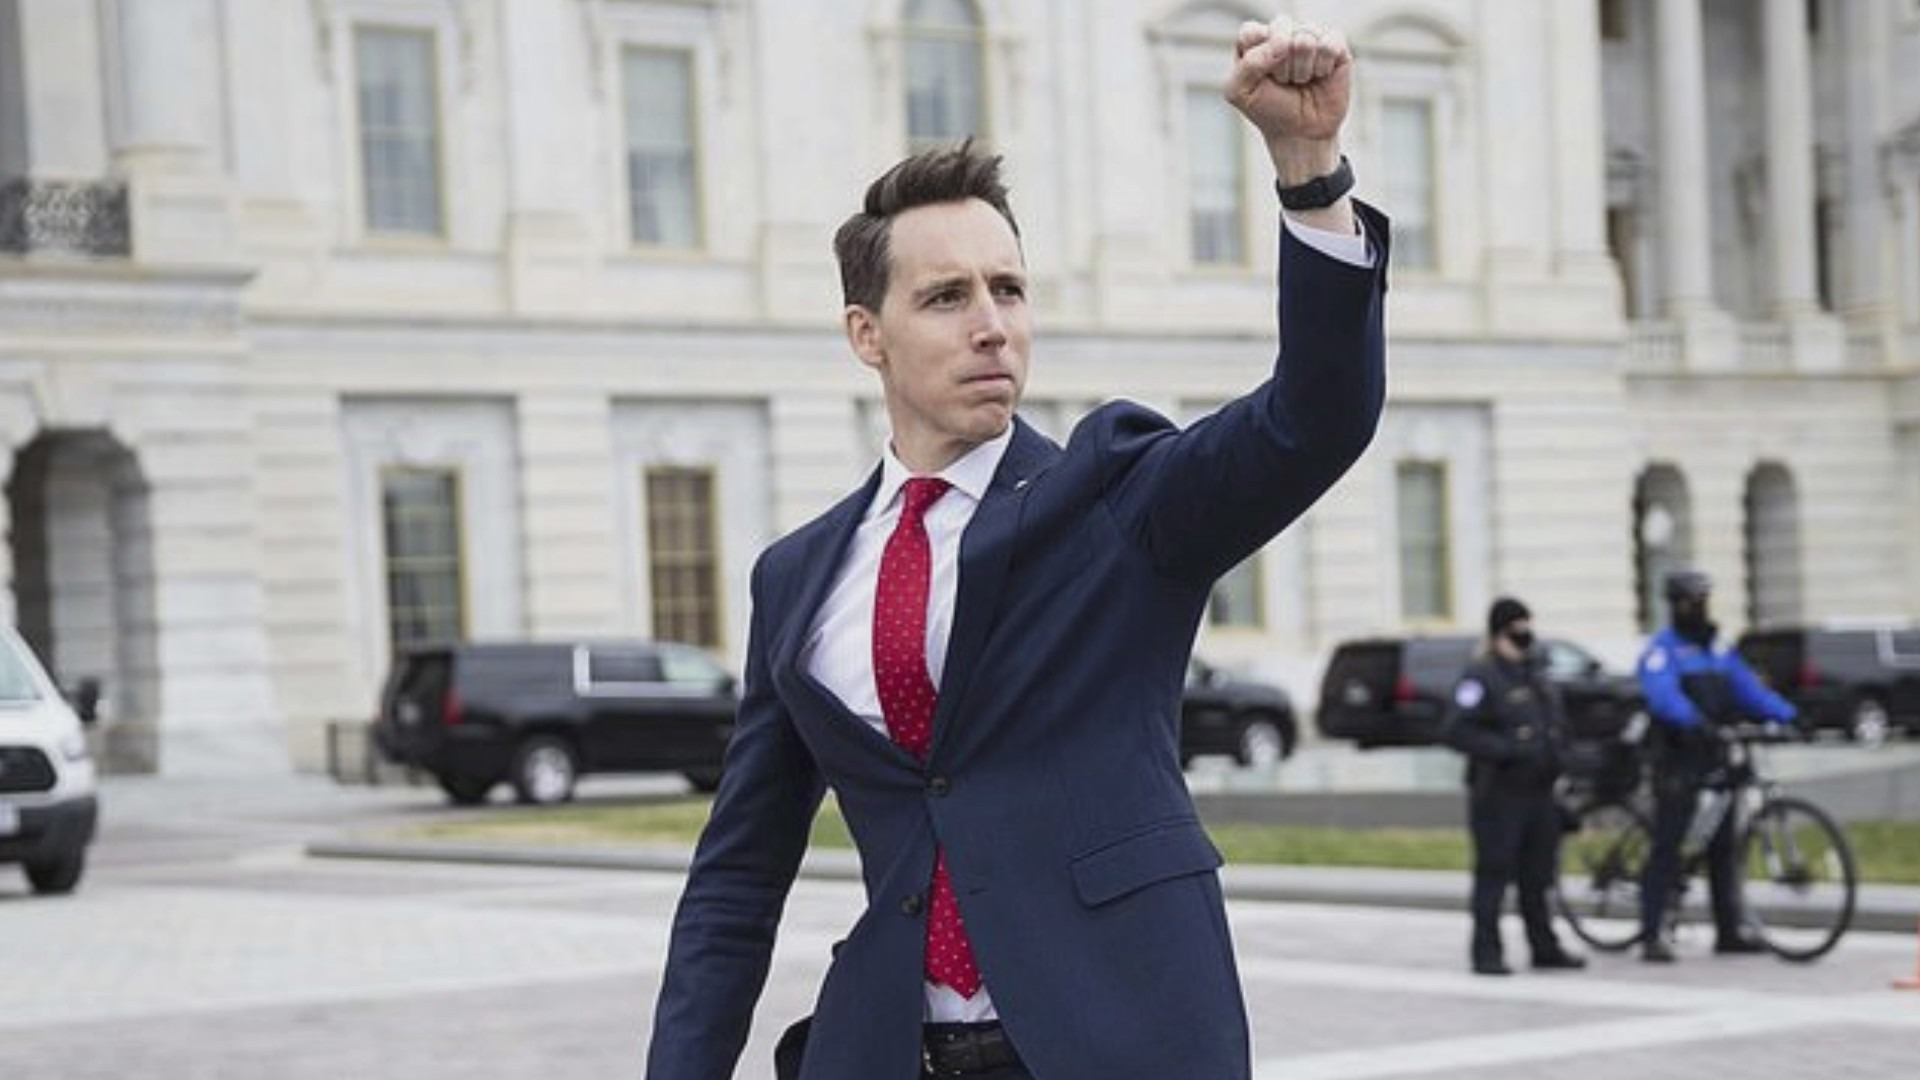 Sen. Hawley criticized for saluting Capitol protesters with fist pump    WAVY.com